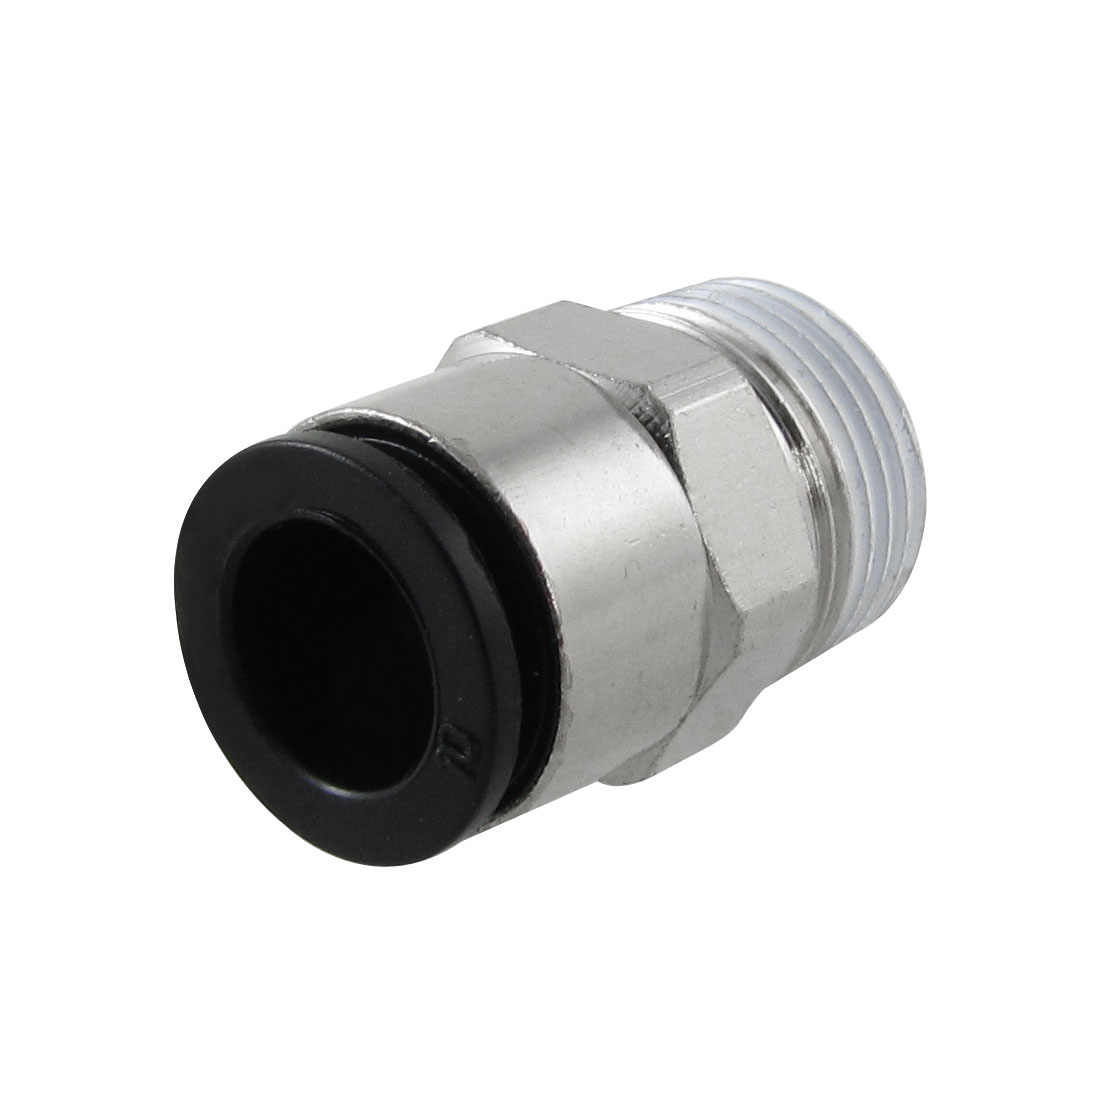 "2/5"" 10mm Push In Connector 5/8"" Male Thread Pneumatic Quick Fitting"